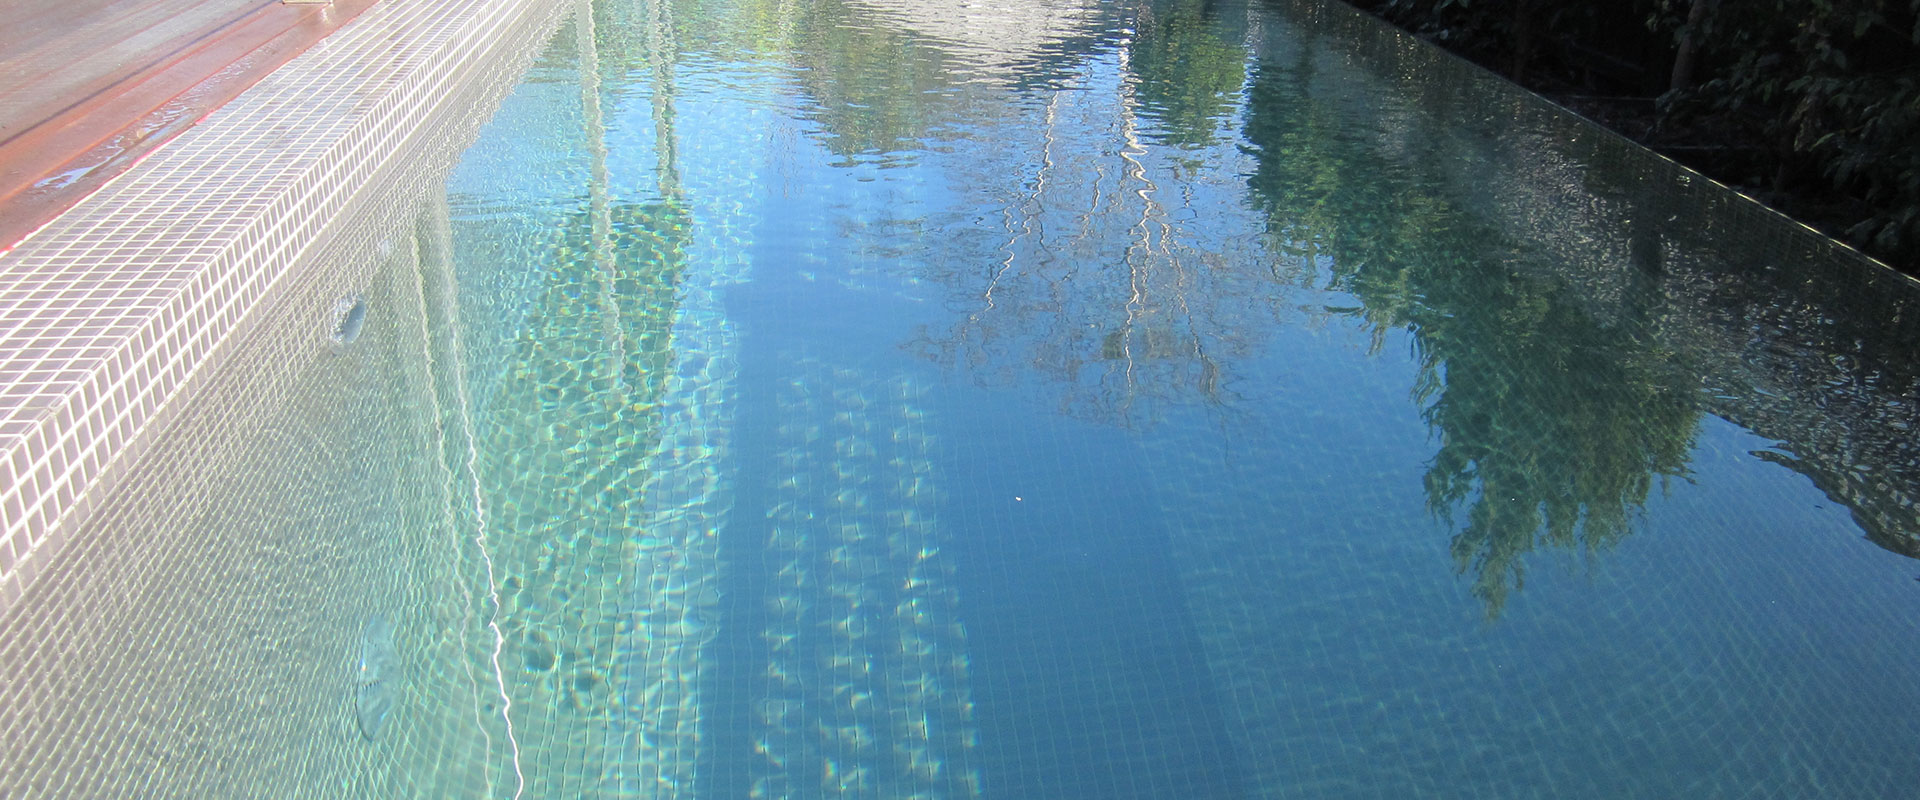 Pool paving and coping